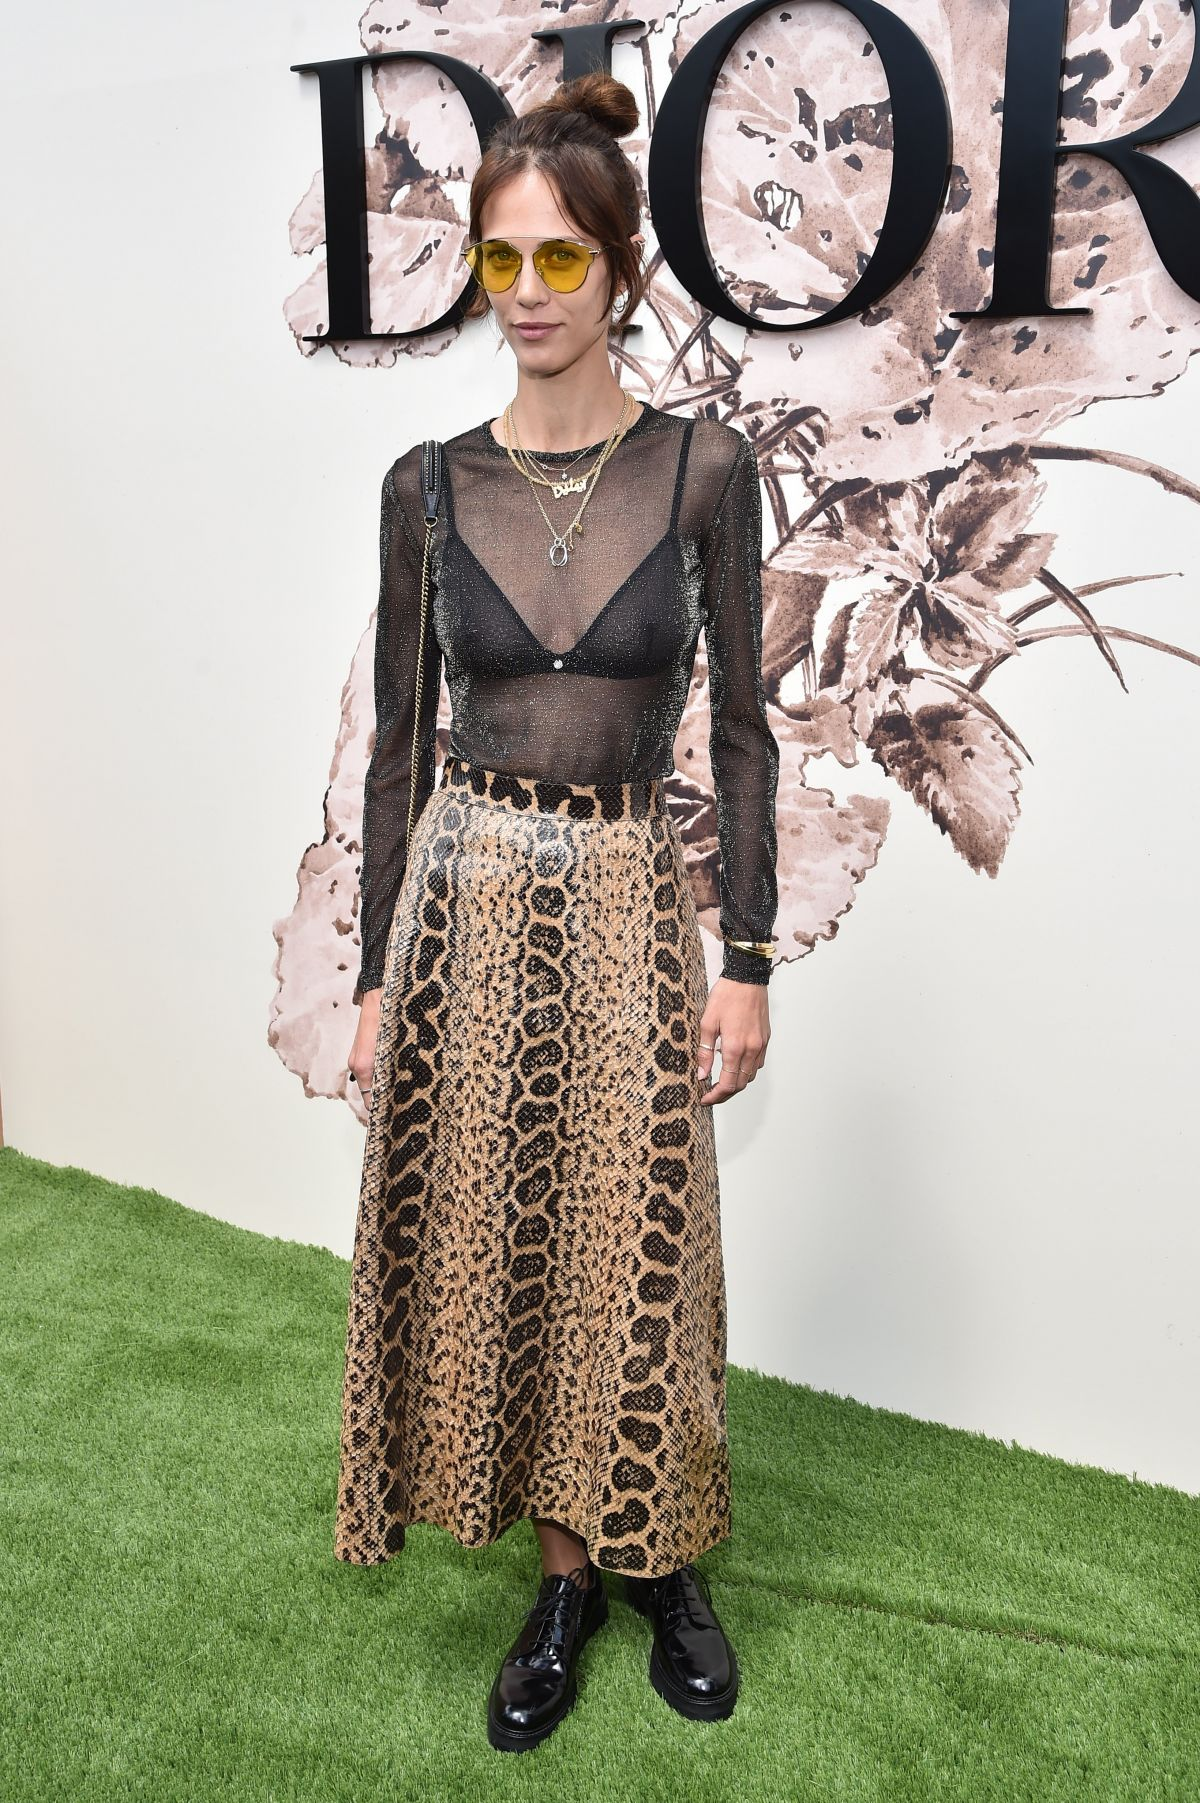 Aymeline valade at christian dior show at haute couture for Haute couture week